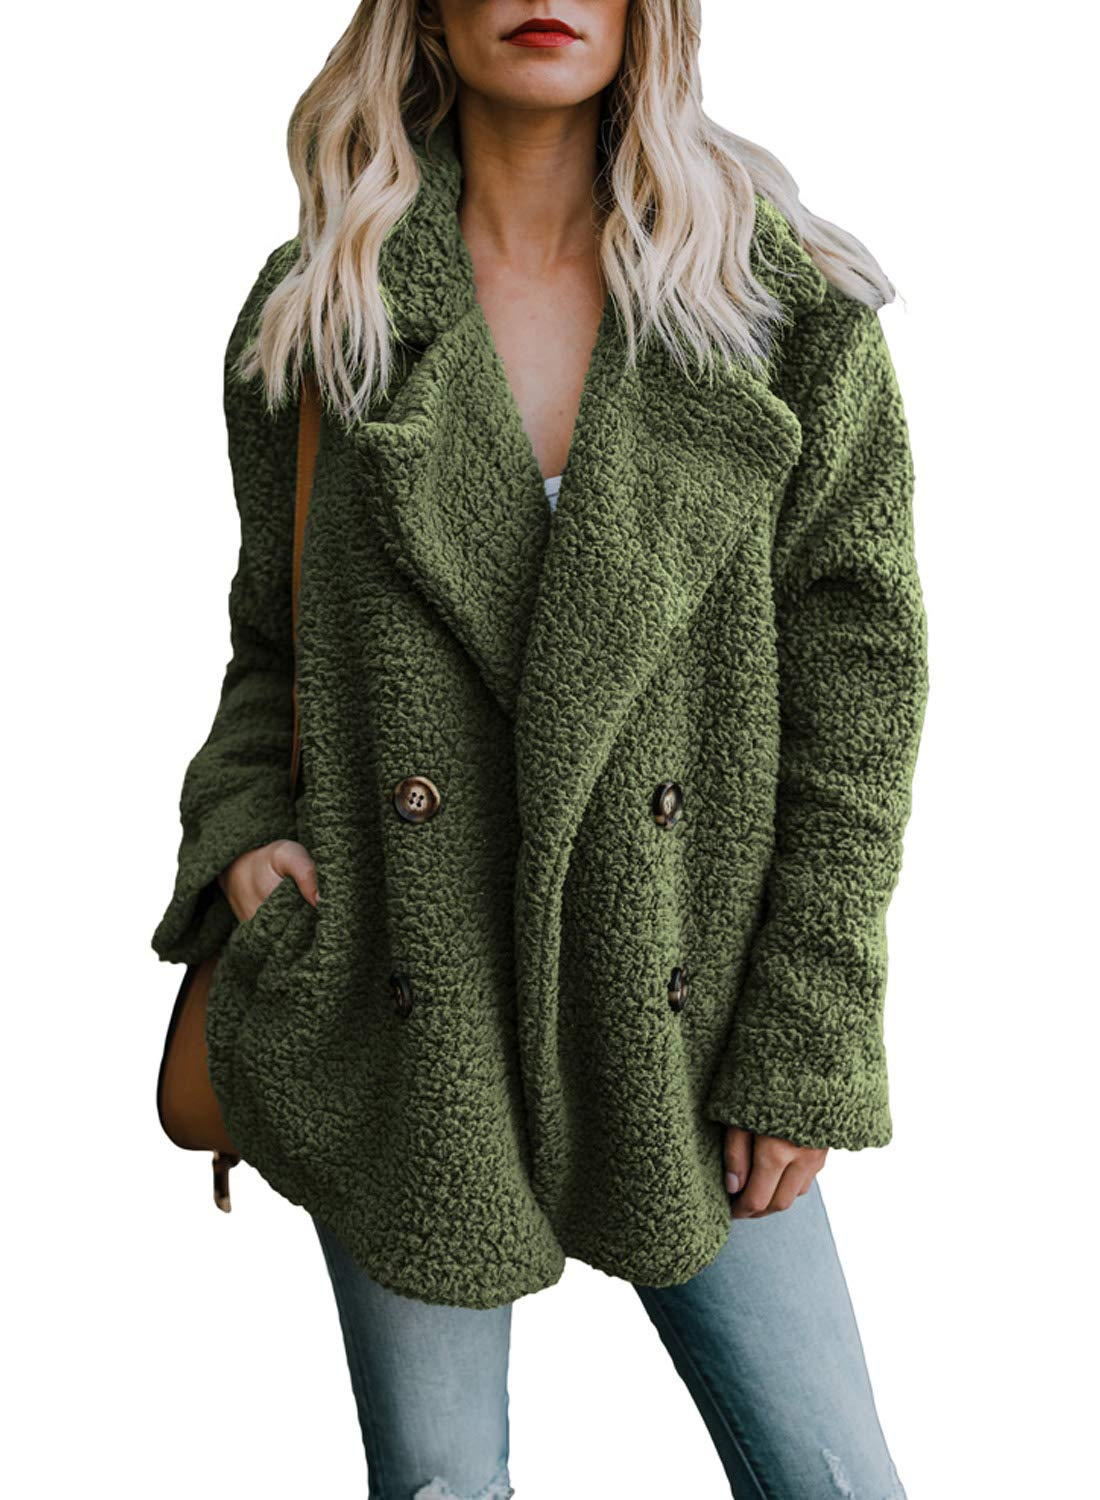 d1fc34a79b1 HOTAPEI Womens Coats Winter Jackets Cozy Warm Casual Oversized Long Sleeve  Open Front Fuzzy Fleece Fluffy Cardigan Sweater Coat with Pockets Green  Small